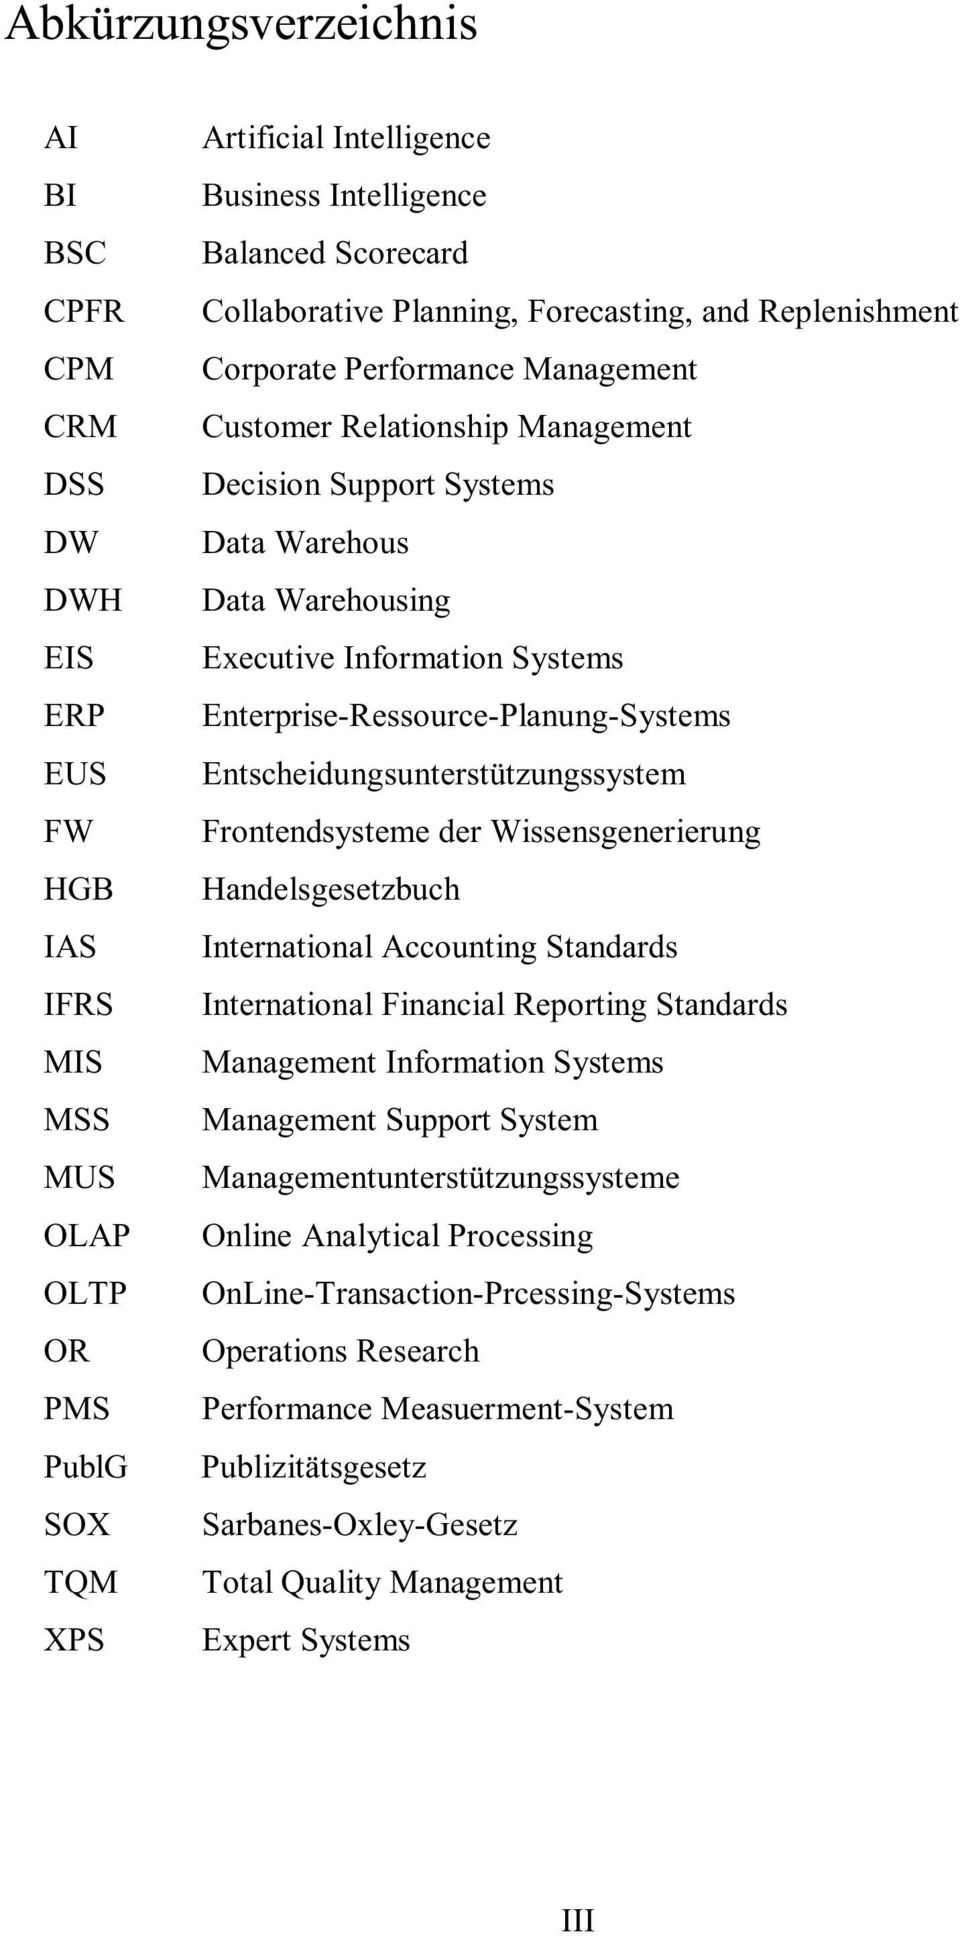 Systems Enterprise-Ressource-Planung-Systems Entscheidungsunterstützungssystem Frontendsysteme der Wissensgenerierung Handelsgesetzbuch International Accounting Standards International Financial